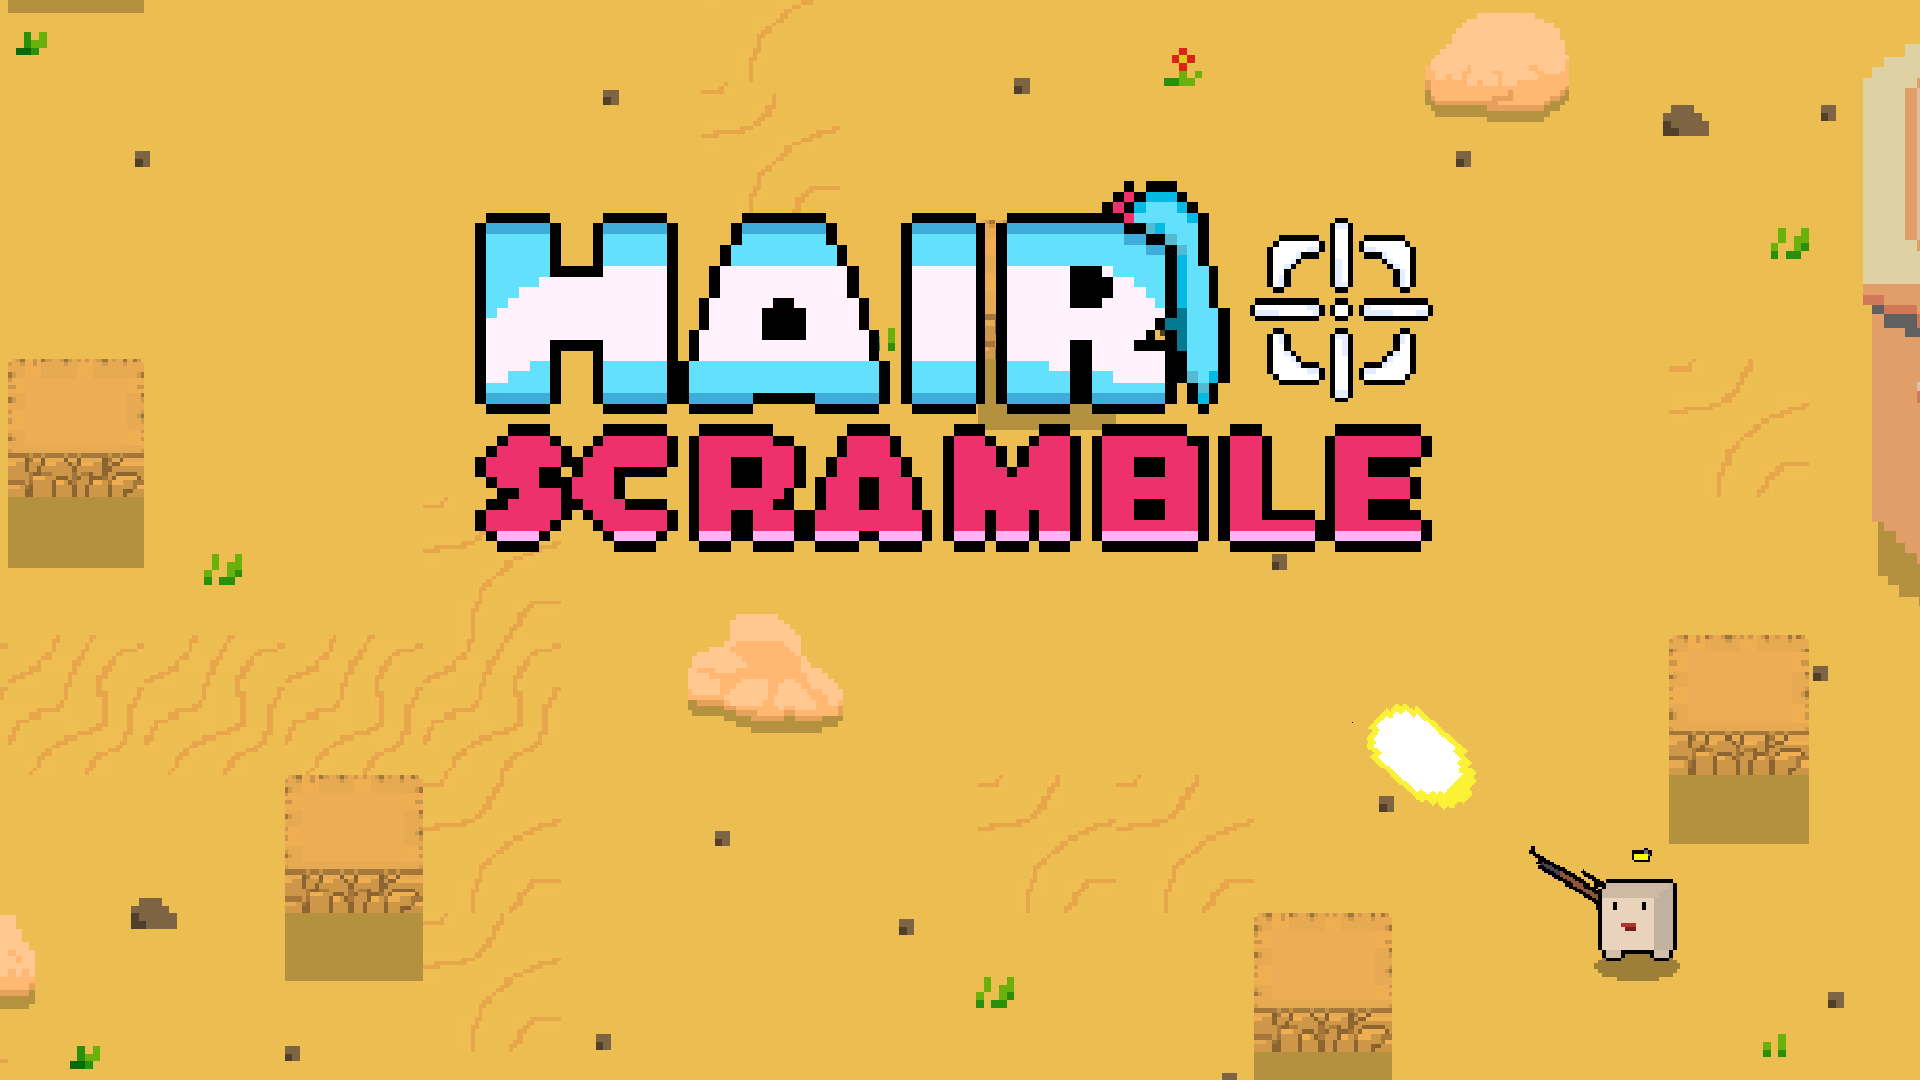 [MWU Korea '18] Hair Scramble / PoolC